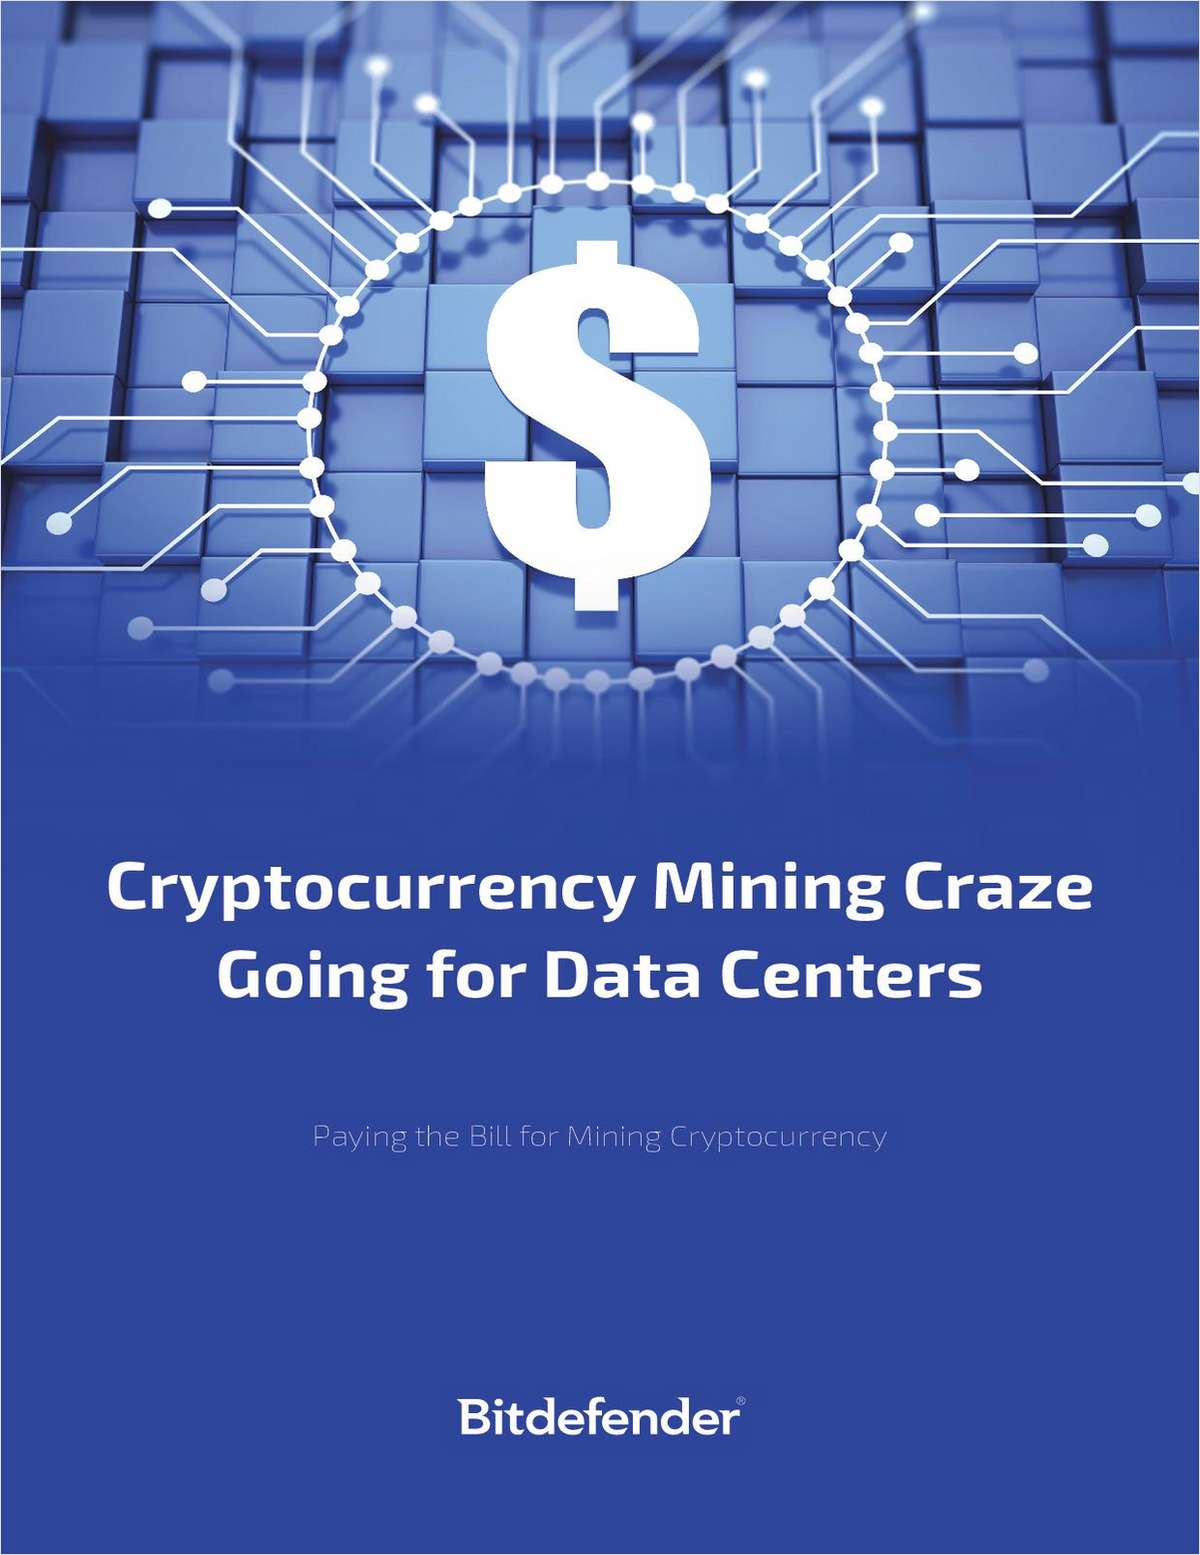 Cryptocurrency Mining Craze Going for Data Centers